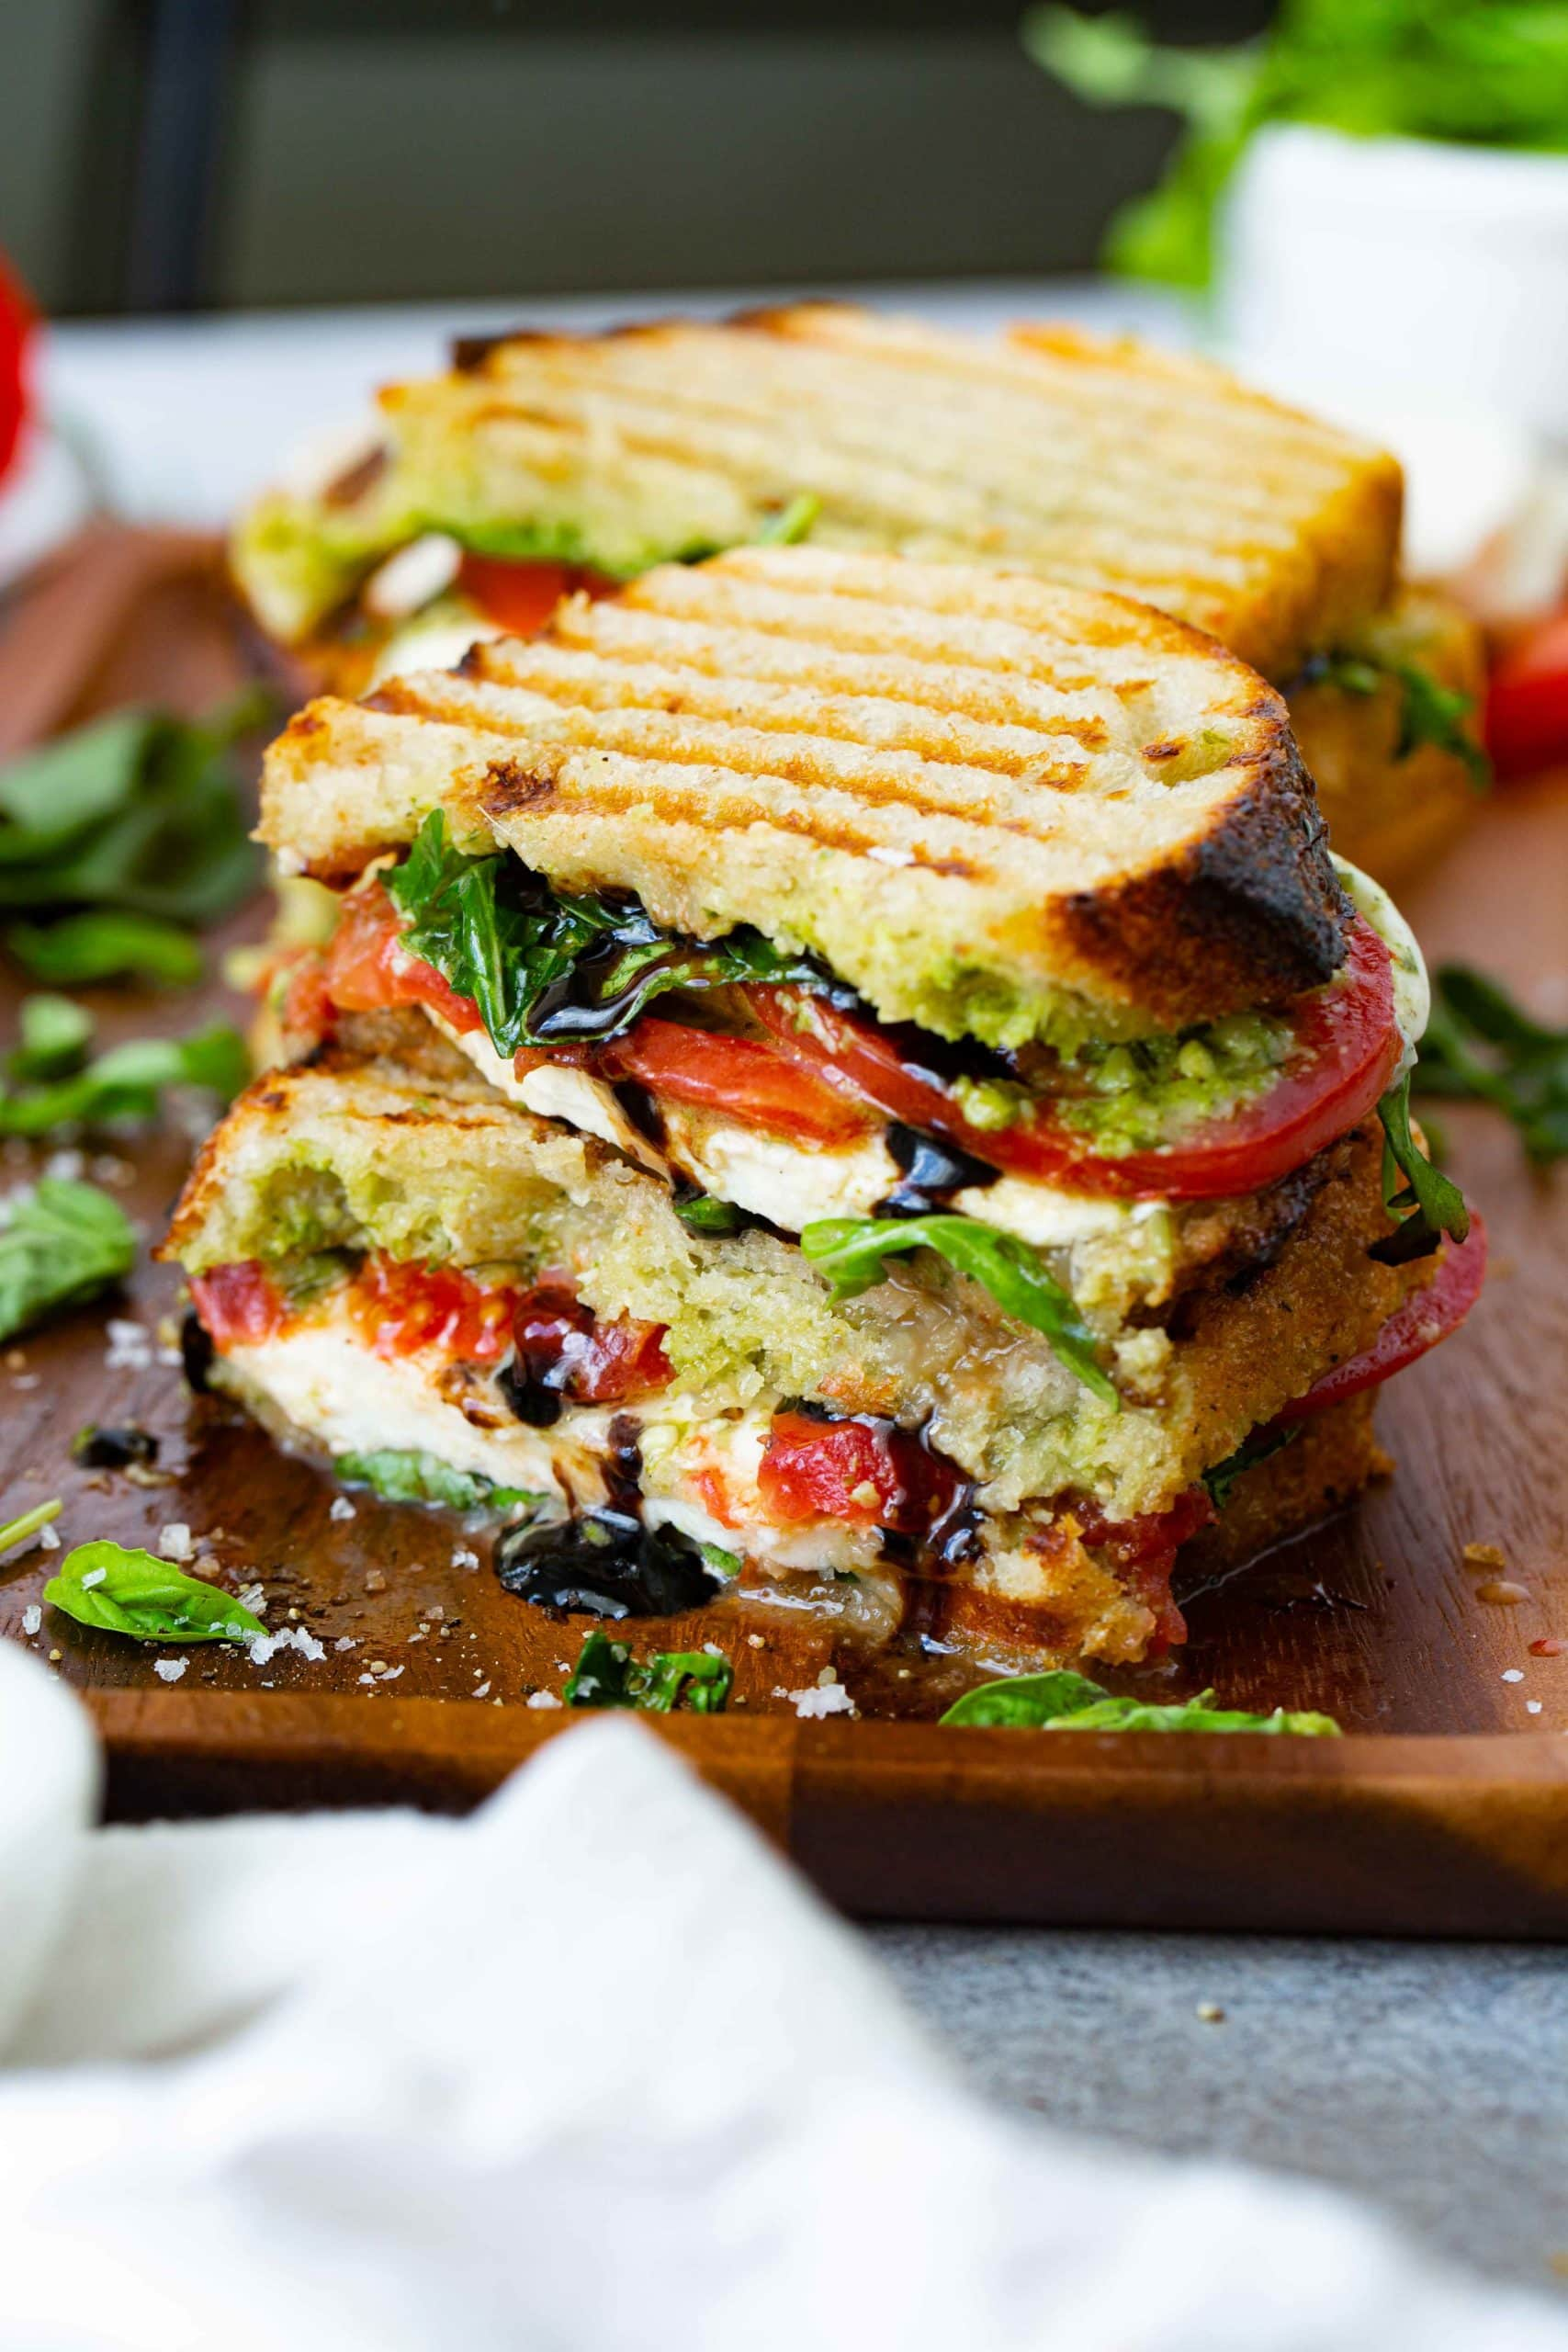 A grilled caprese panini that has been cut in half and stacked on top of each other. You can see the grill marks on the bread and the arugula, tomatoes, pesto and mozzarella cheese inside. A little balsamic glaze is oozing from the sandwich. There is another sandwich in the background, and some arugula and basil on the table.